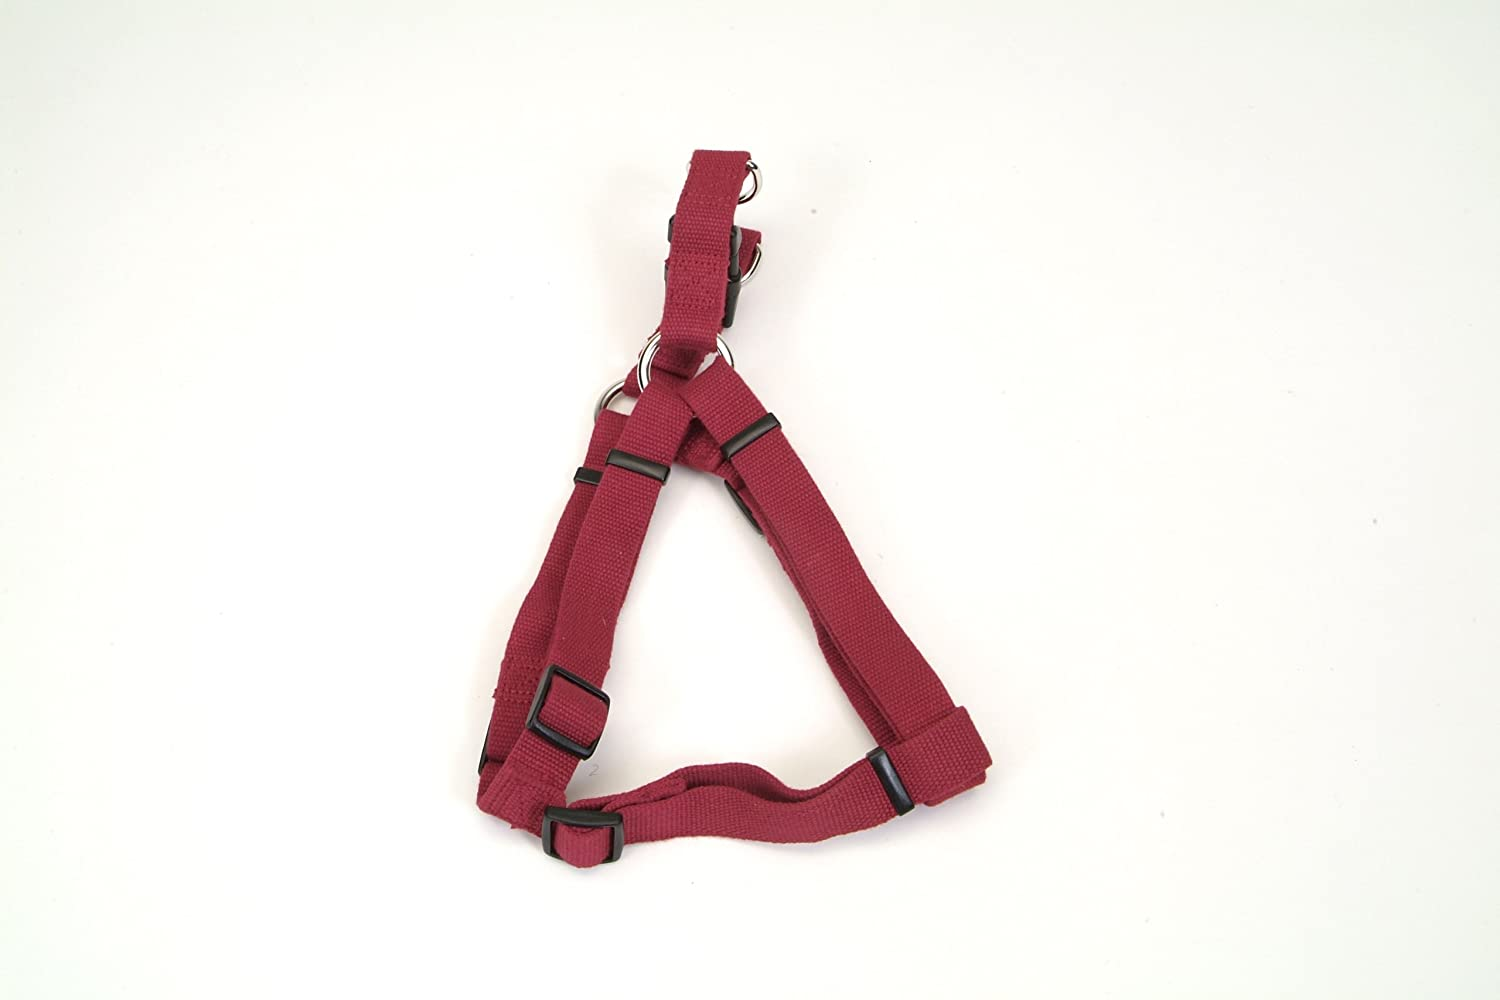 New Earth Soy Comfort Wrap Dog Harness, .625-Inch Wide, Cranberry